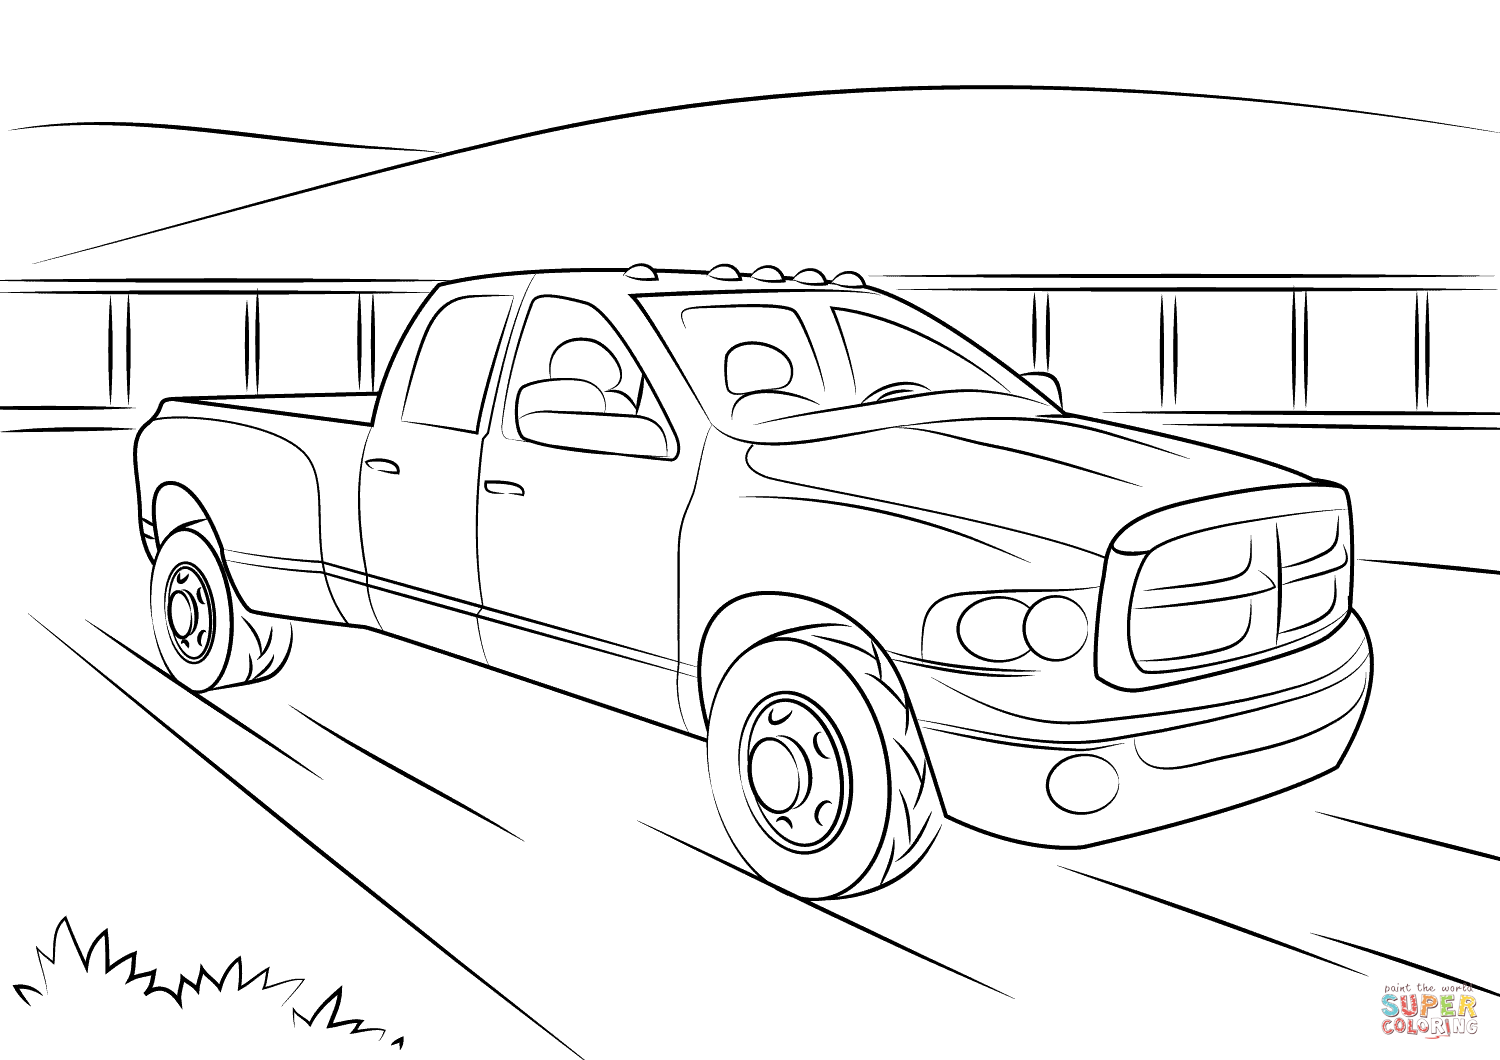 dodge ram truck coloring pages dodge ram cliparts free download on clipartmag dodge coloring truck pages ram